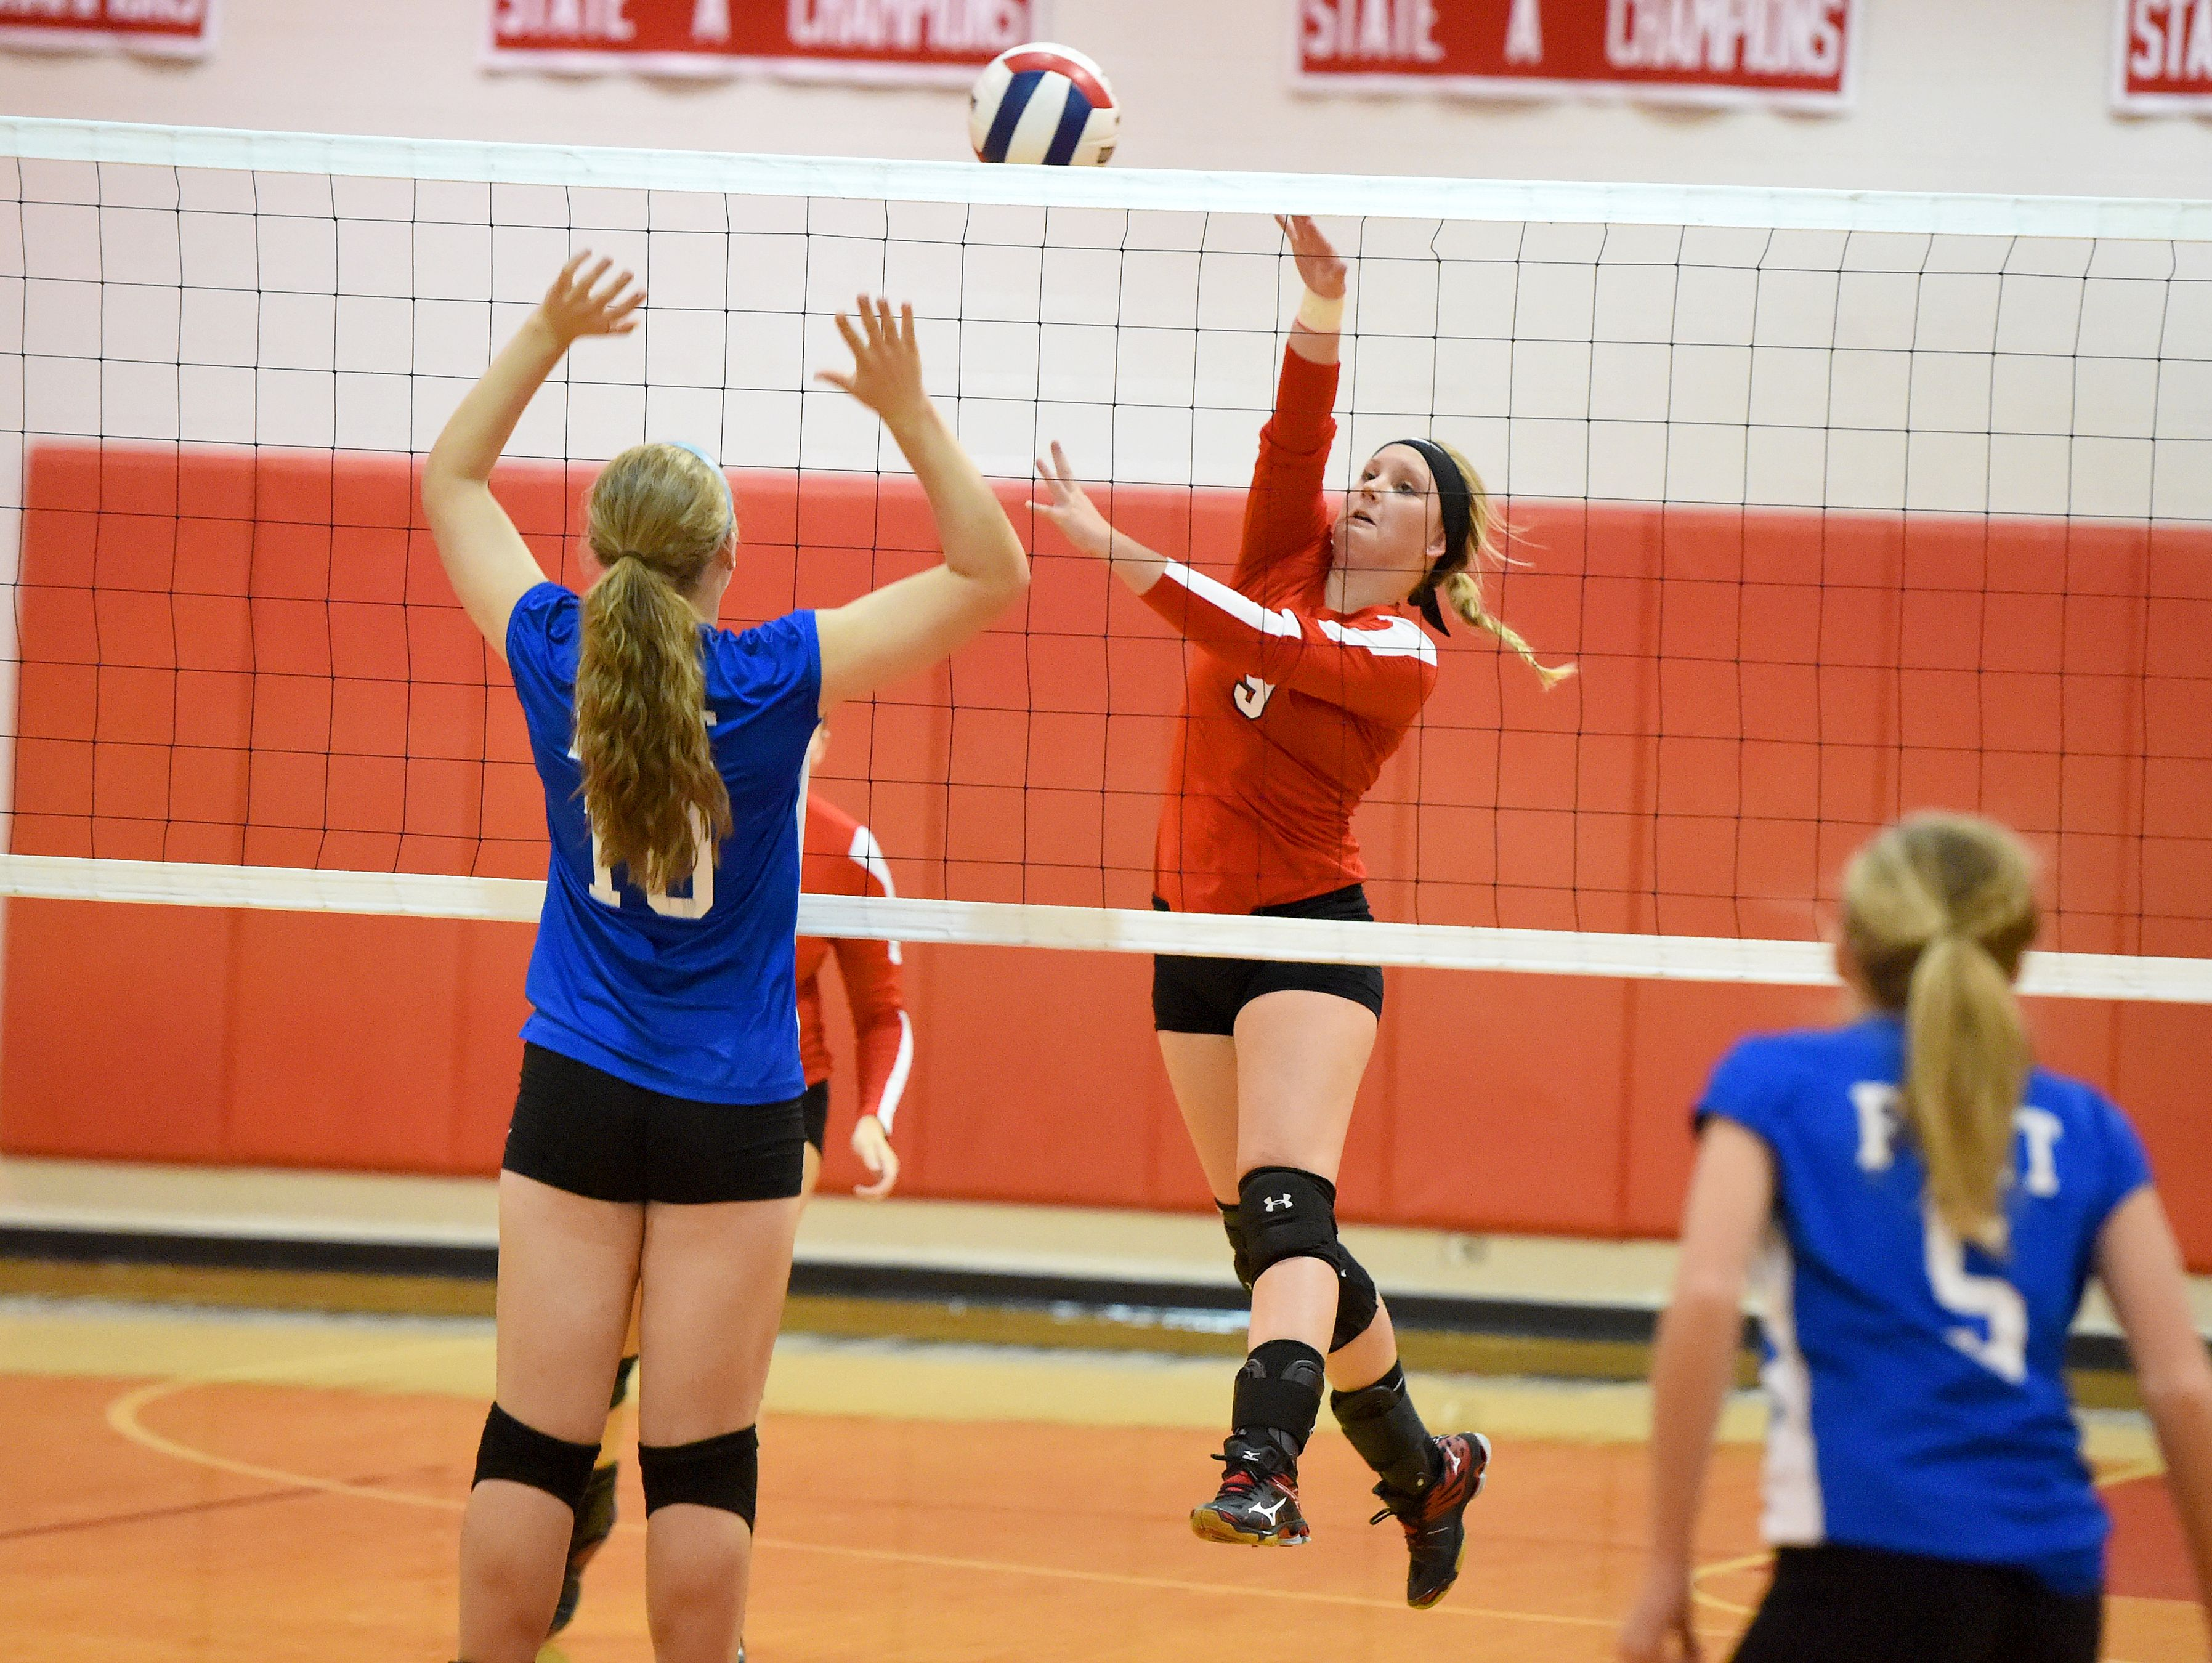 Riverheads' Macey Snyder spikes the ball across the net from Fort Defiance's Catie Cramer during a volleyball match played in Greenville on Thursday, Sept. 9, 2016.